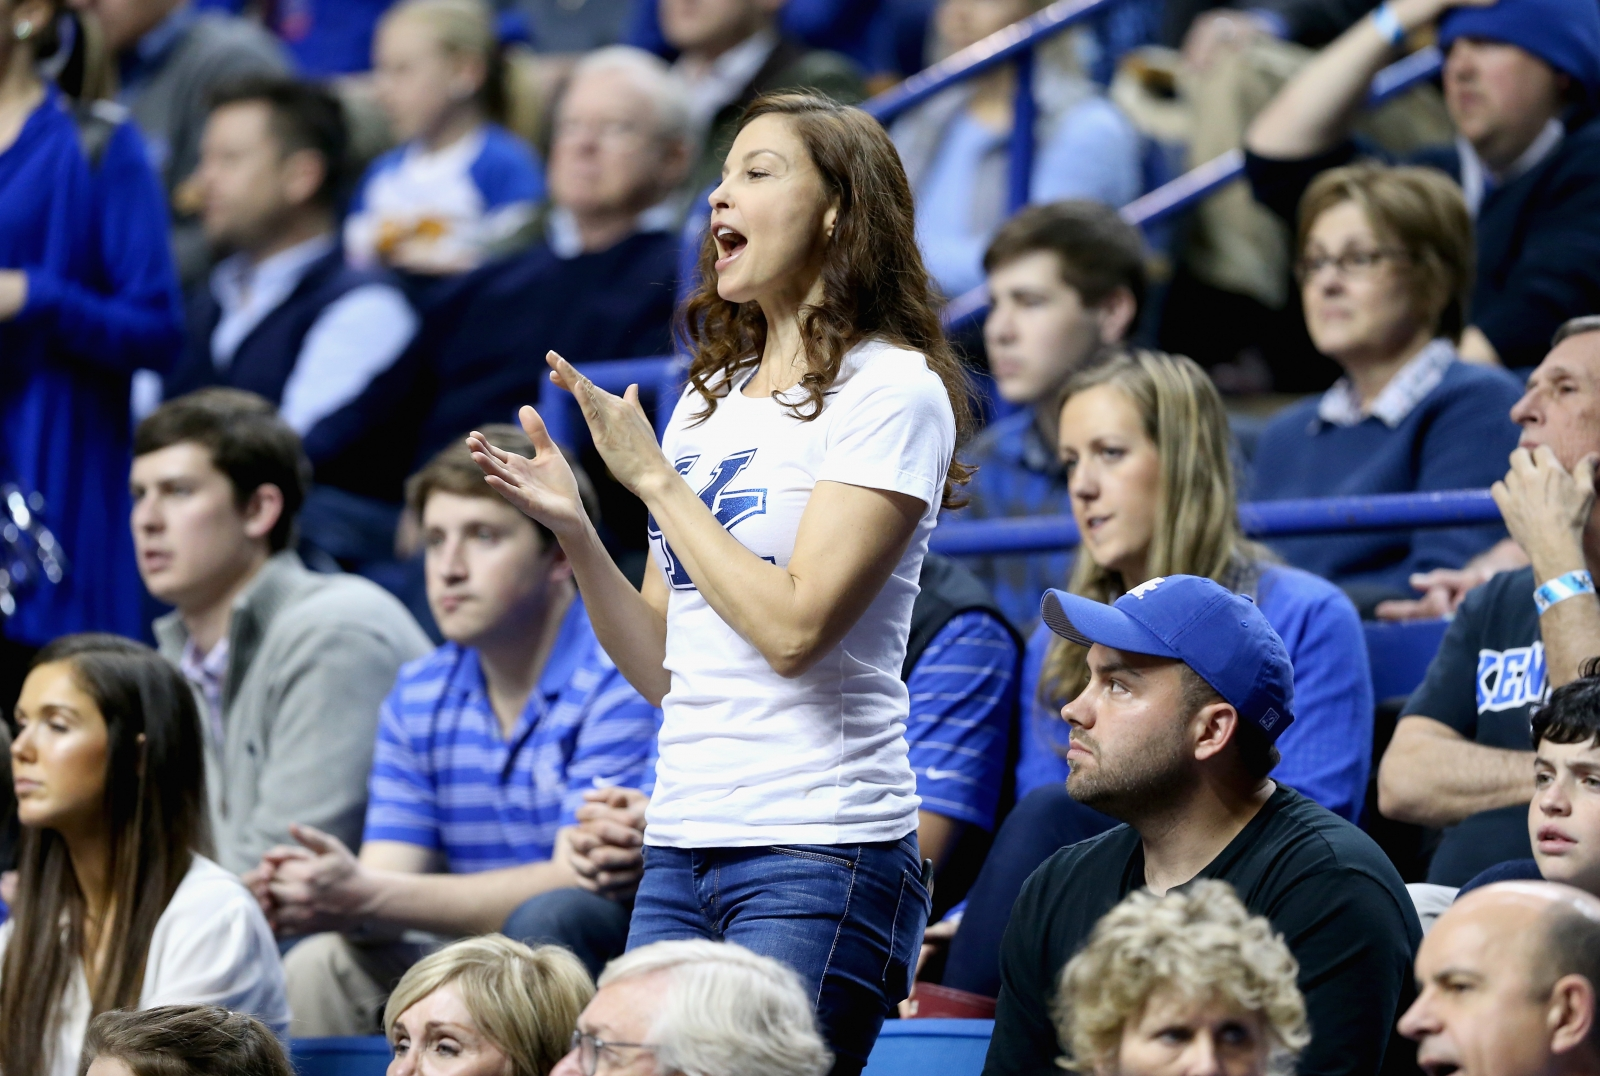 Ashley Judd basketball abuse